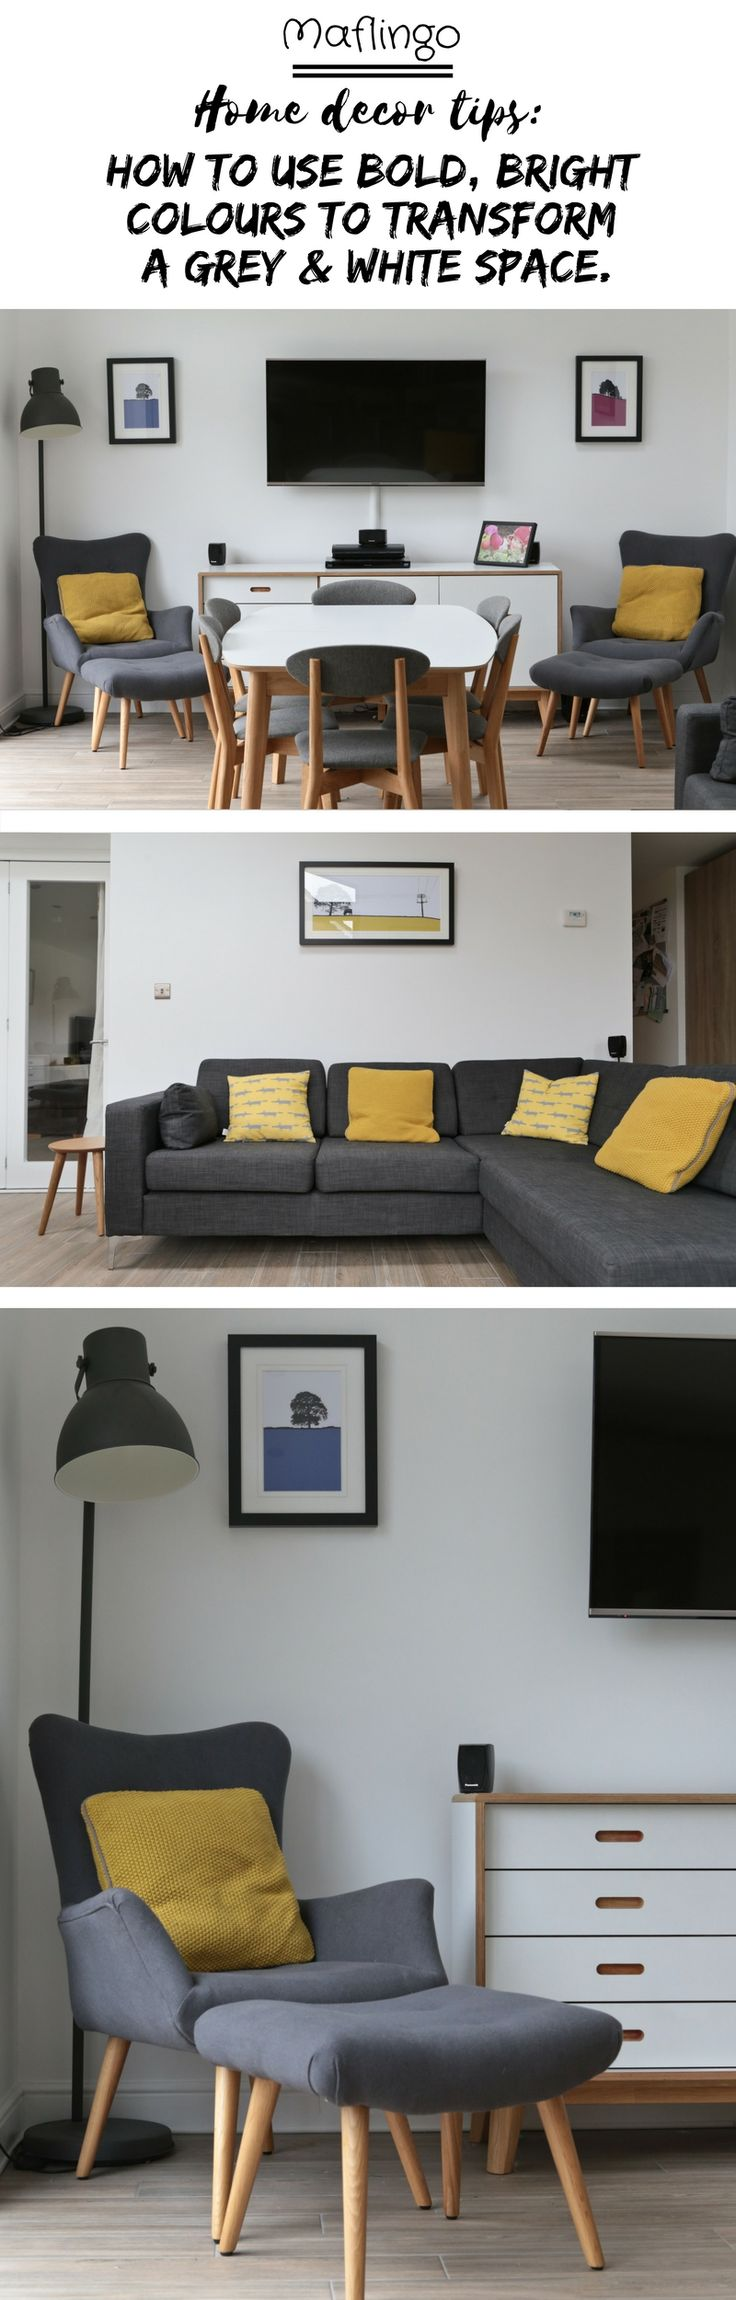 Use brightly coloured soft furnishings and wall art to transform a room with a grey colour scheme. The grey armchair, matching footstool (Homesense) and the grey Hektar Ikea lamp are 'brought to life' with the colourful Beth Jordan Cushion, Jacky Al-Samarraie - Llanbeder Framed Print. The yellow cushions make all the difference when placed on our grey corner sofa, injecting much needed colour. I love the Yellow knitted Beth Jordan cushions and the yellow Scion Mini Mr Fox Cushions.